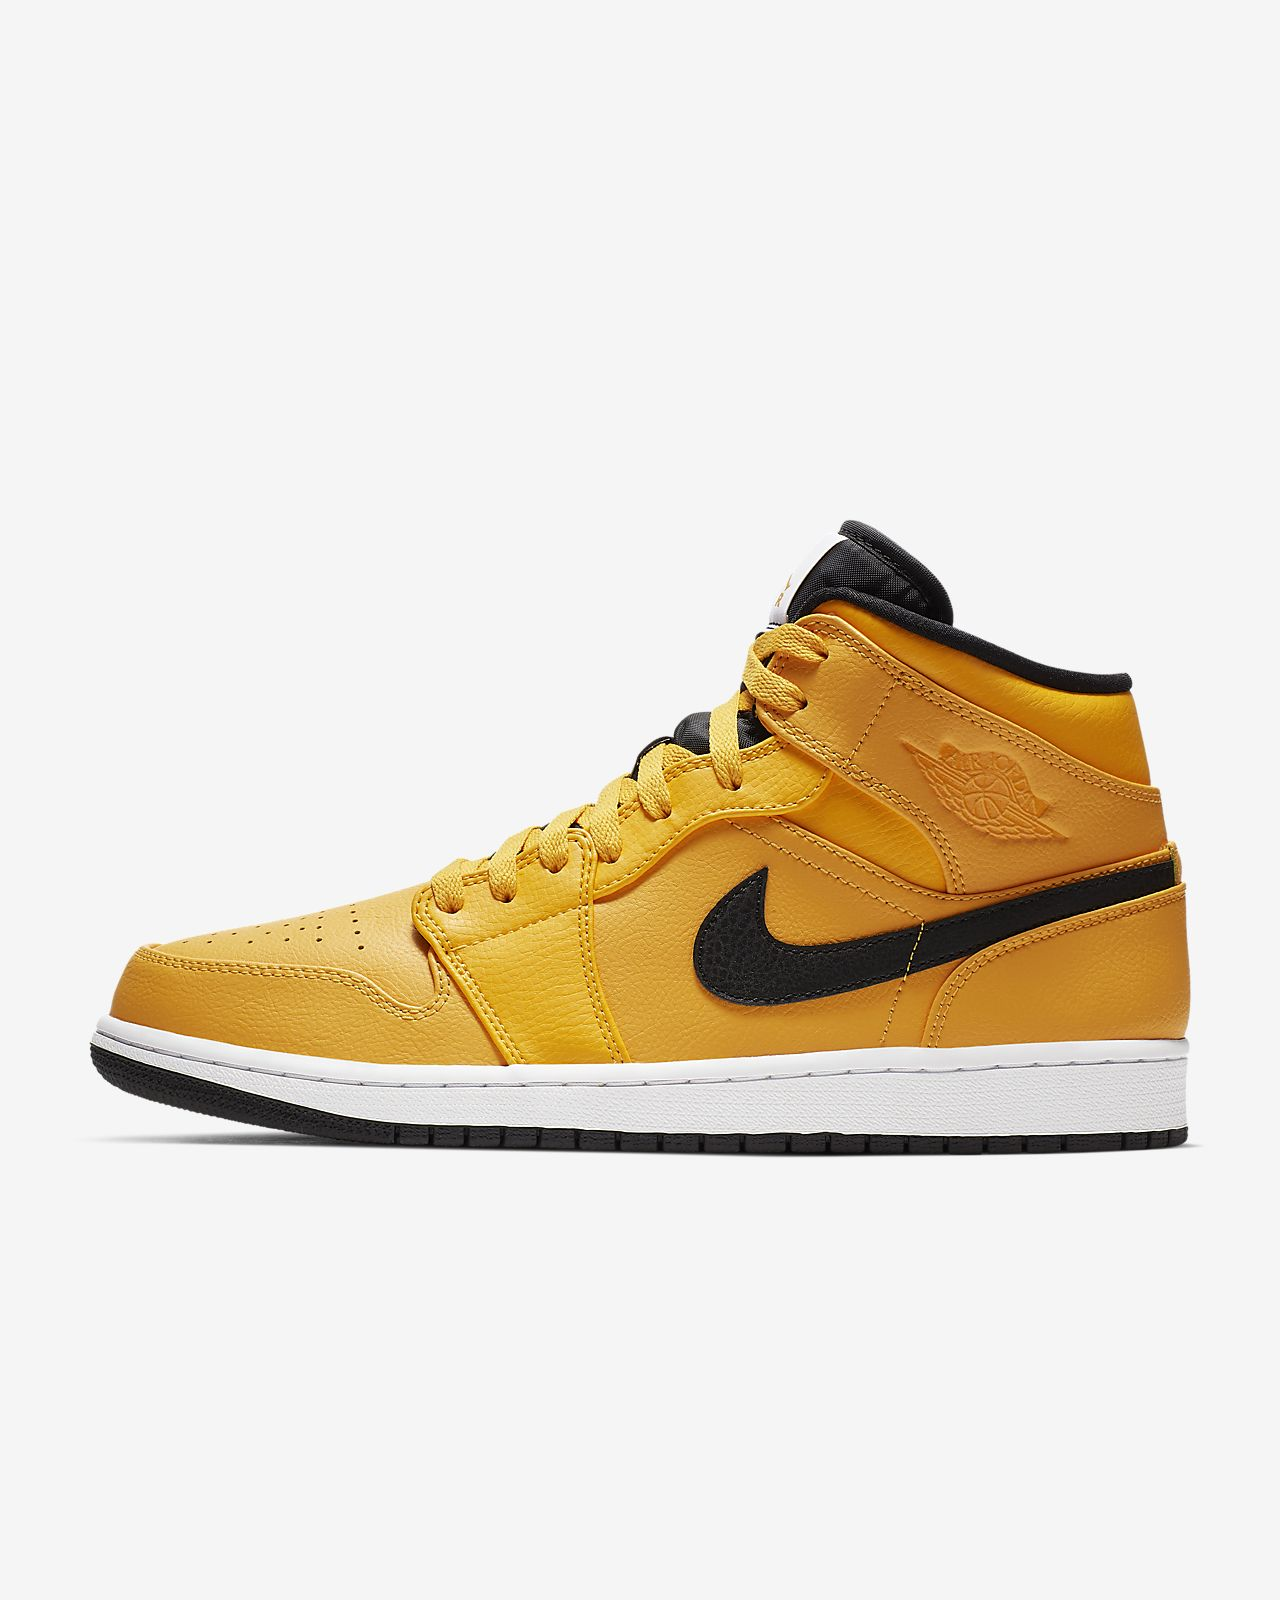 pick up 9e8d6 caee6 ... Air Jordan 1 Mid Men s Shoe